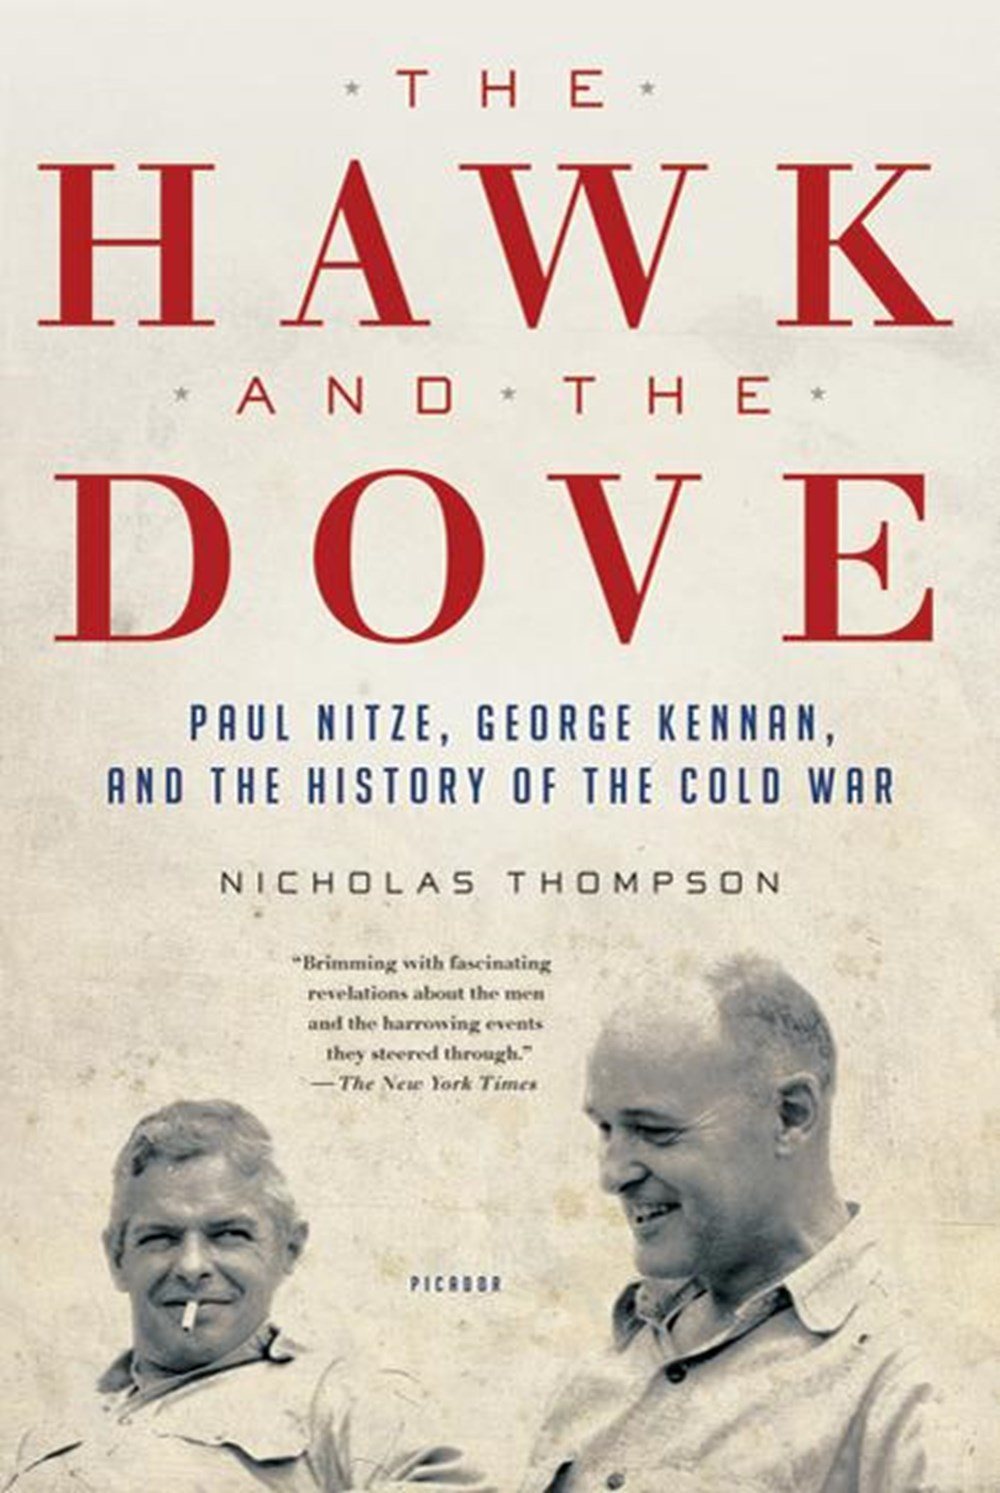 Hawk and the Dove Paul Nitze, George Kennan, and the History of the Cold War